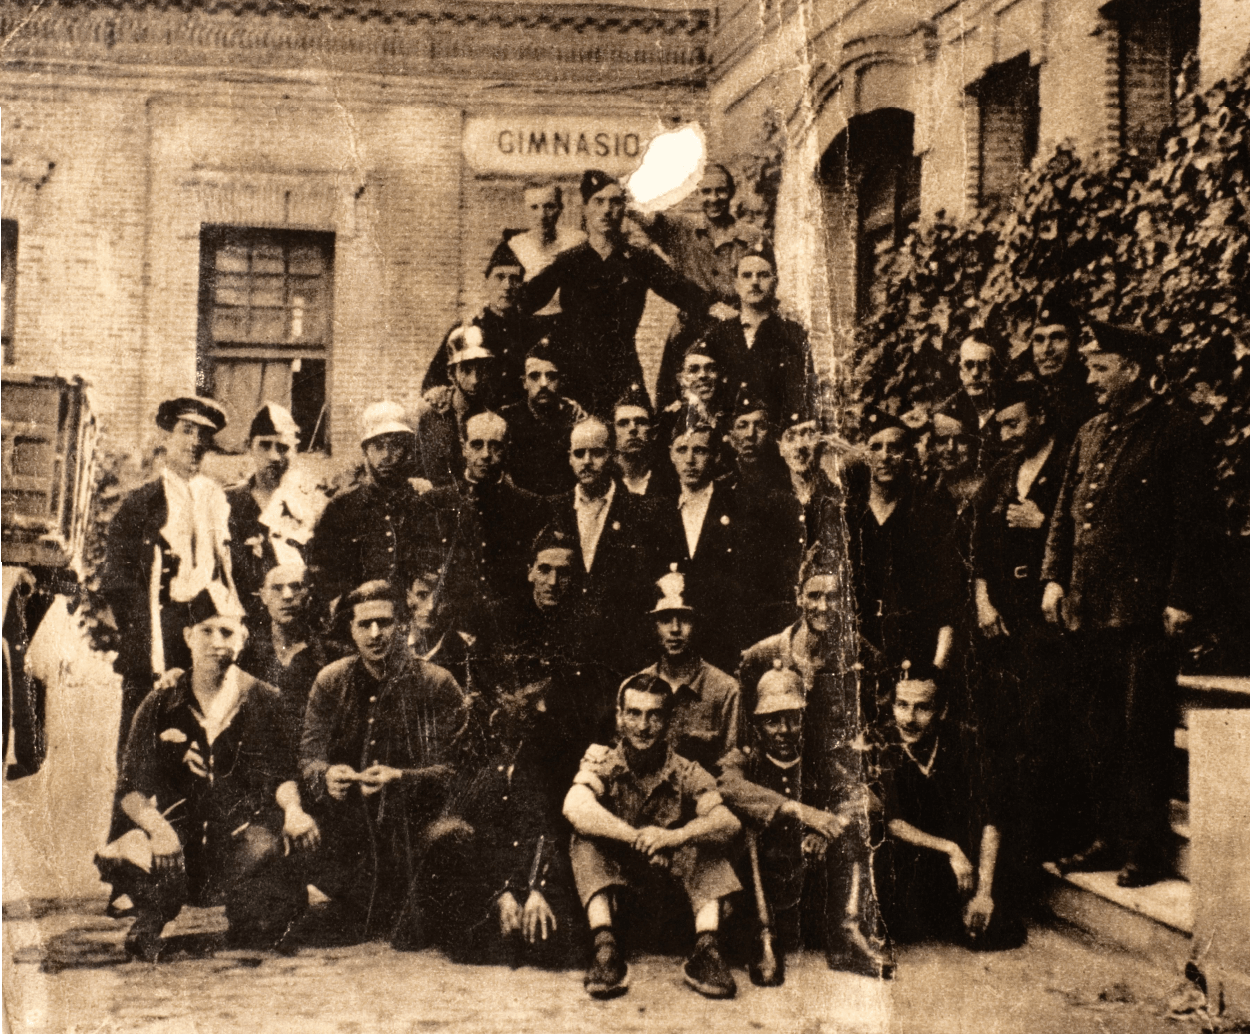 Bombers catalans i madrilenys a Madrid l'agost de 1937